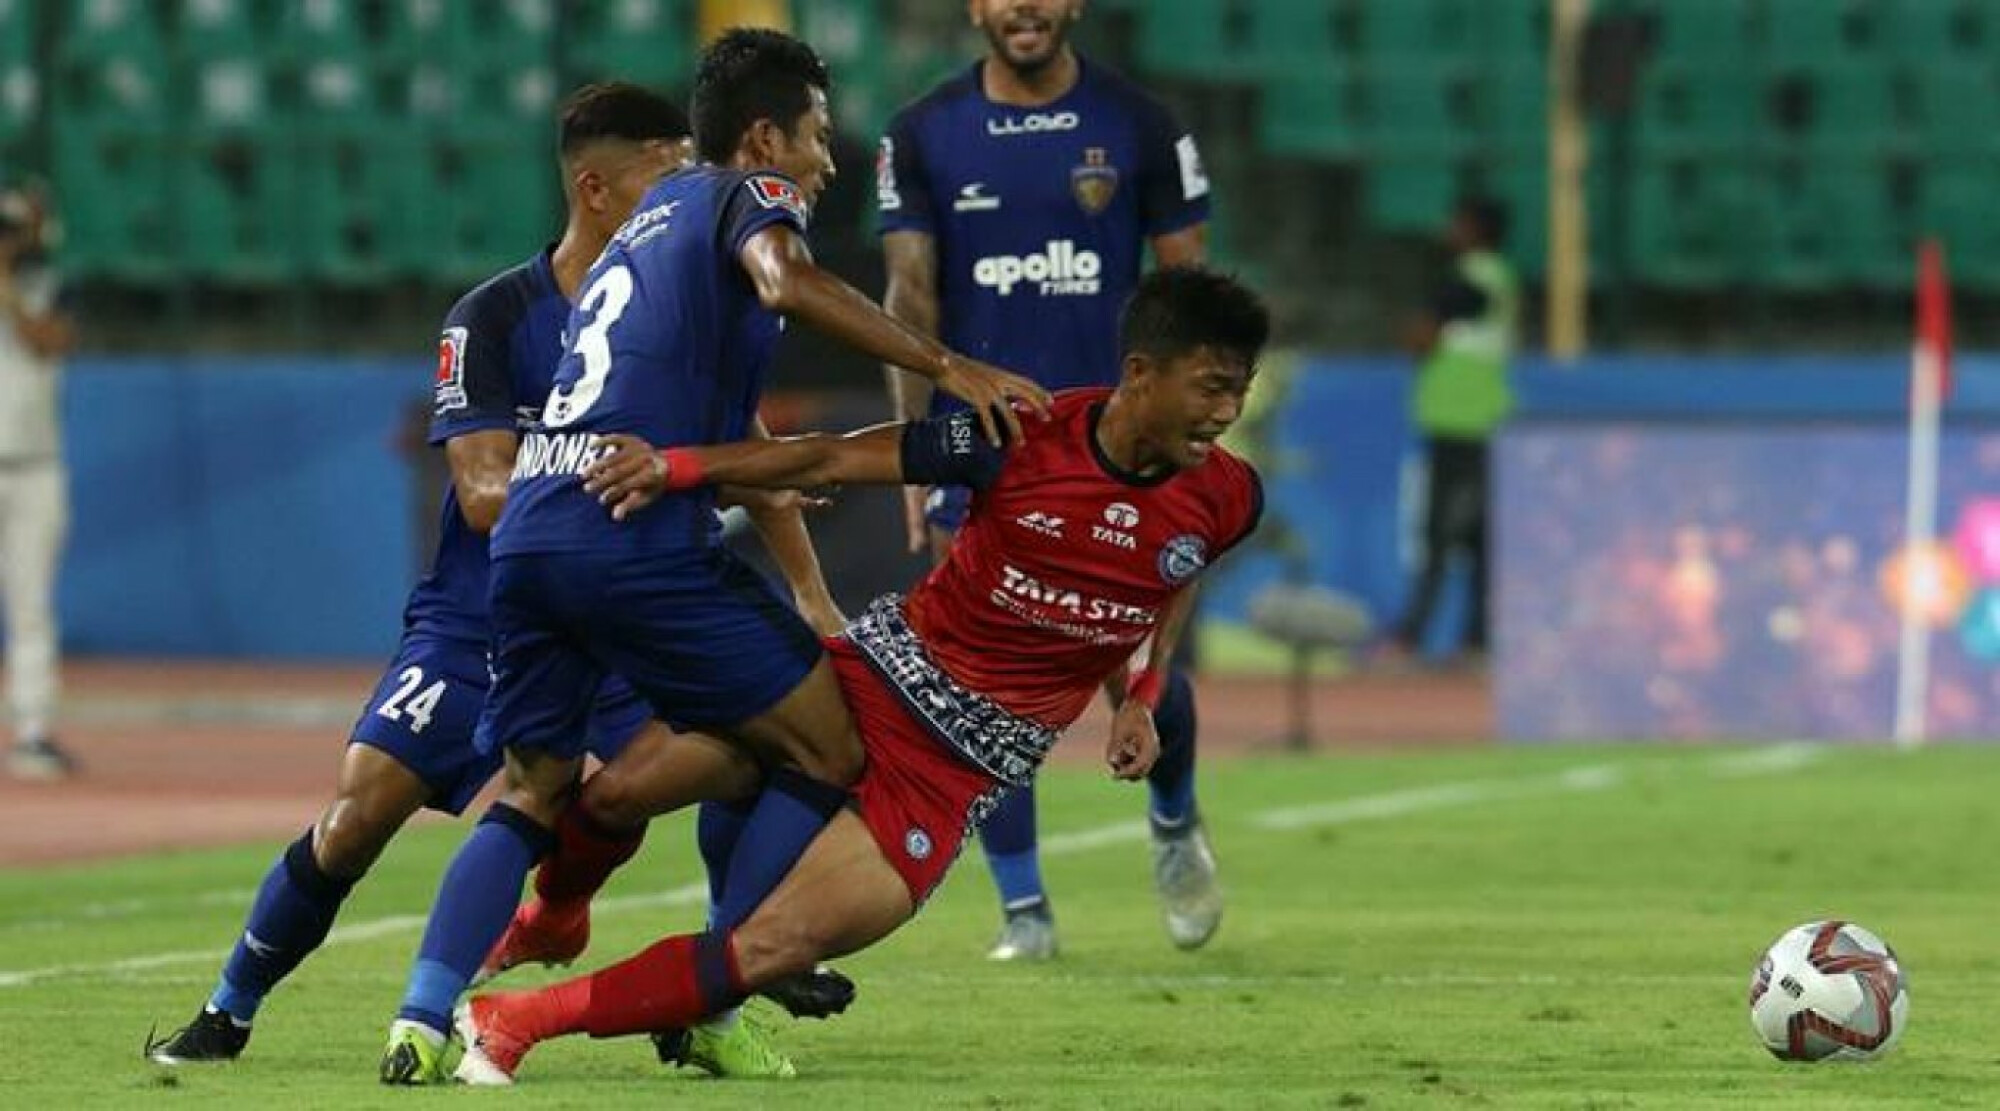 ISL 2018-19: Jamshedpur-Chennaiyin ends encounter stalemate, NorthEast qualify to the playoffs.